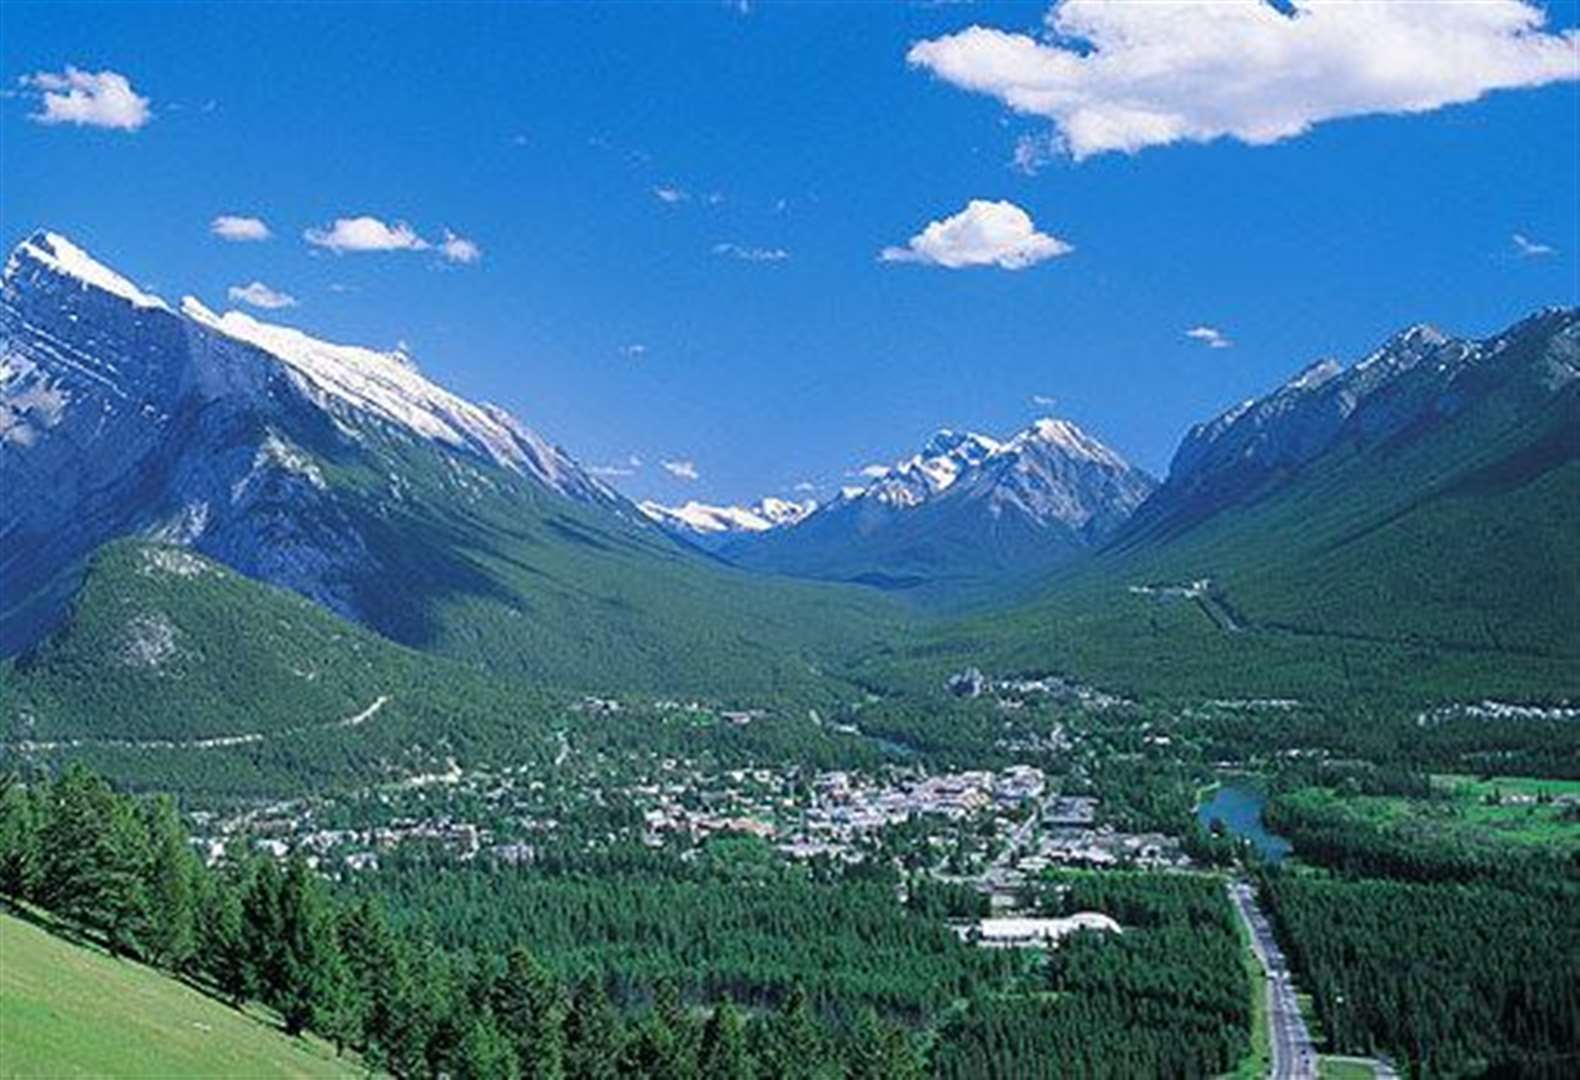 A TWINNING bid by Banff to team up with their Canadian namesake town has took a step forward.